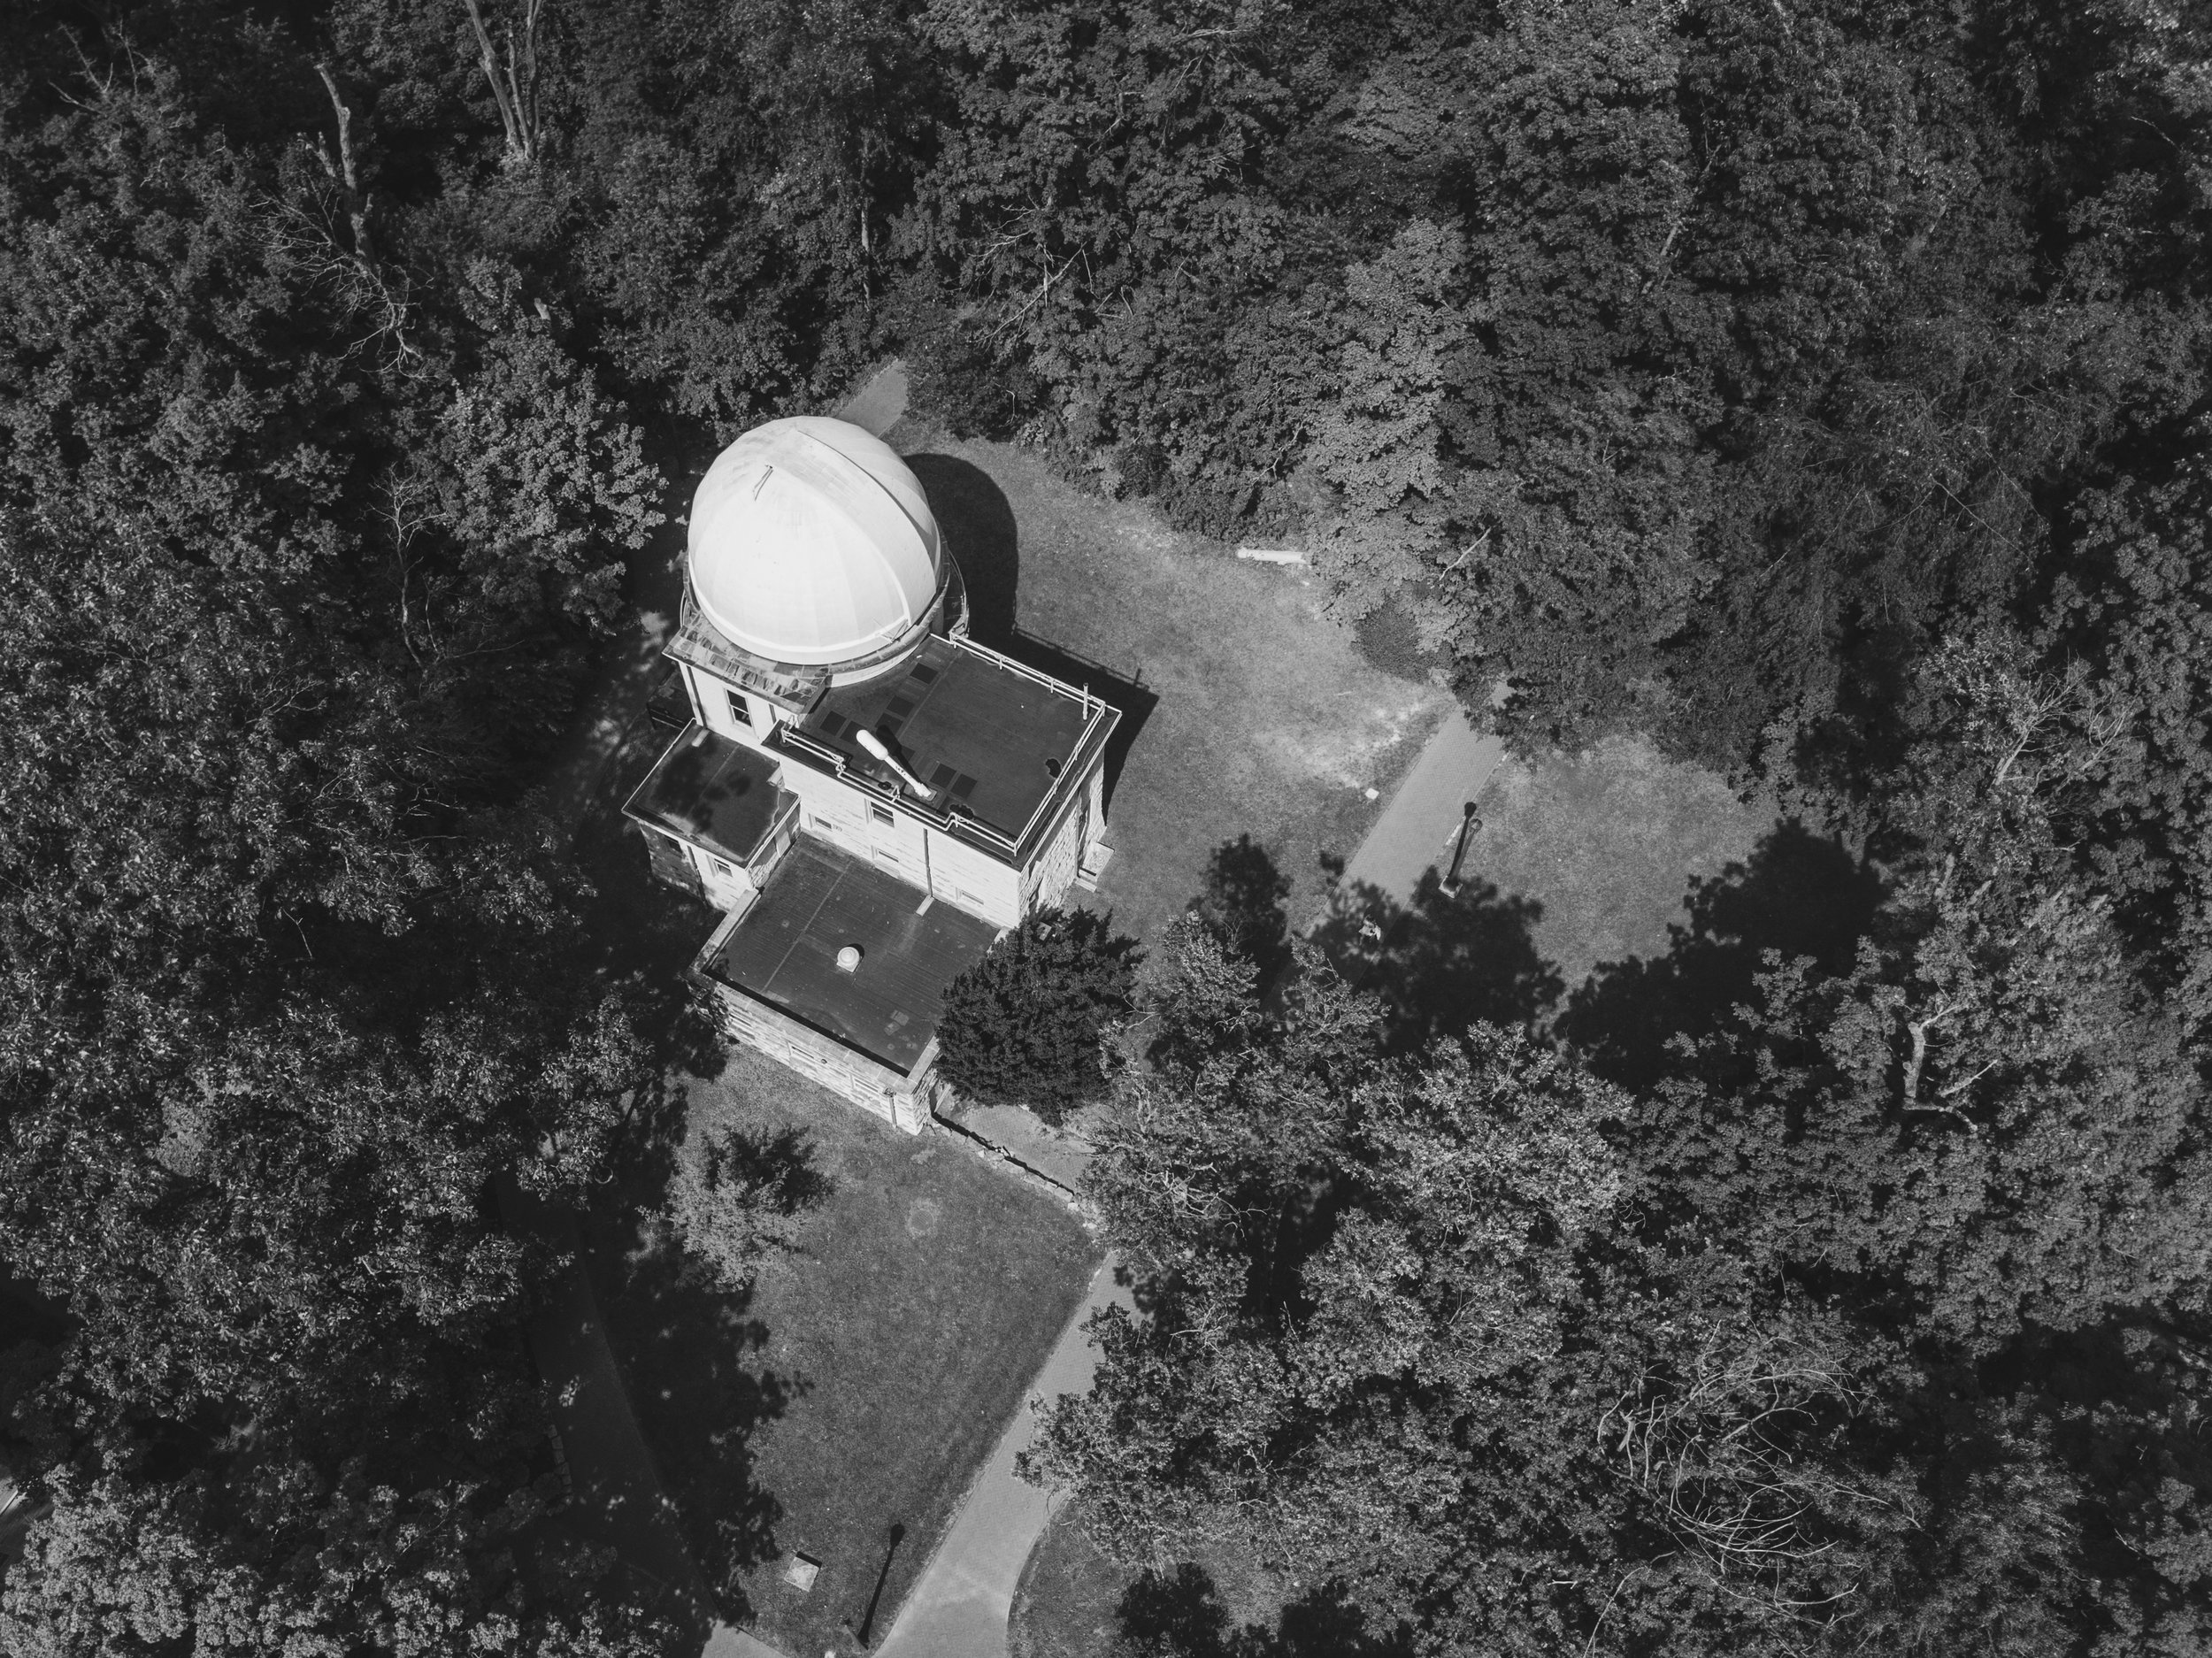 The Kirkwood Observatory on Indiana University's campus.